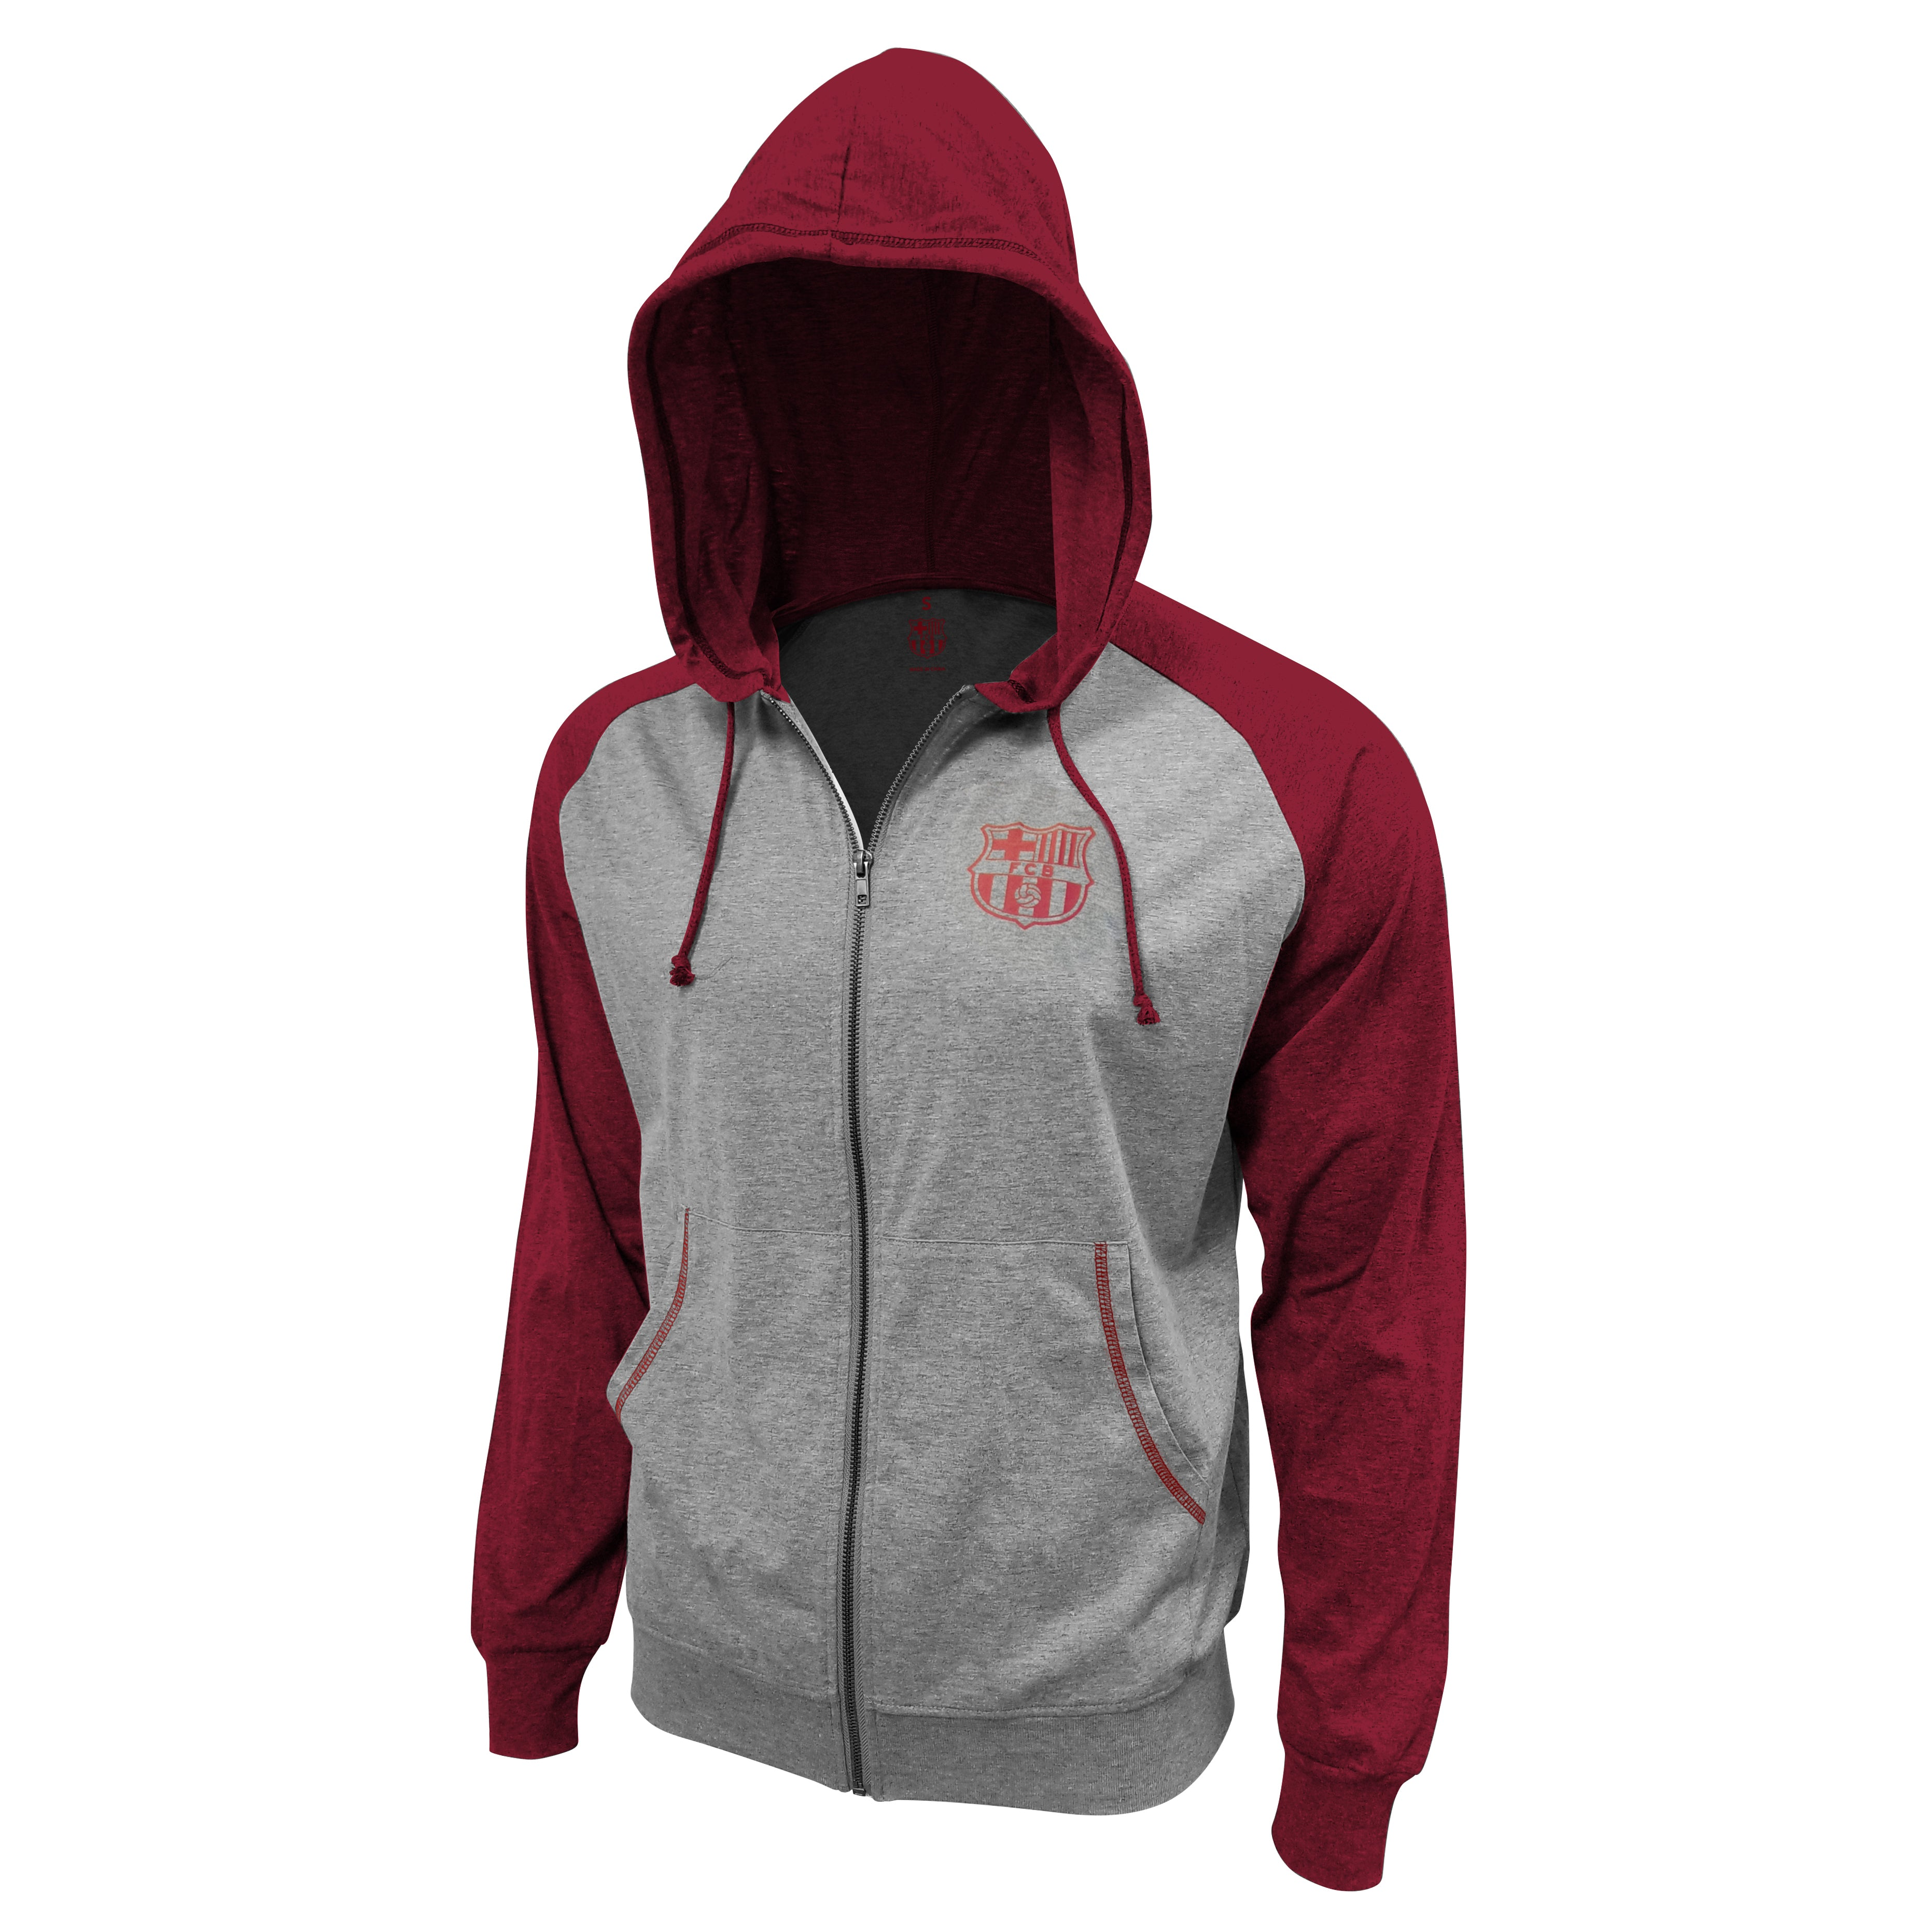 FC Barcelona Lightweight Full-Zip Hoodie - Navy by Icon Sports